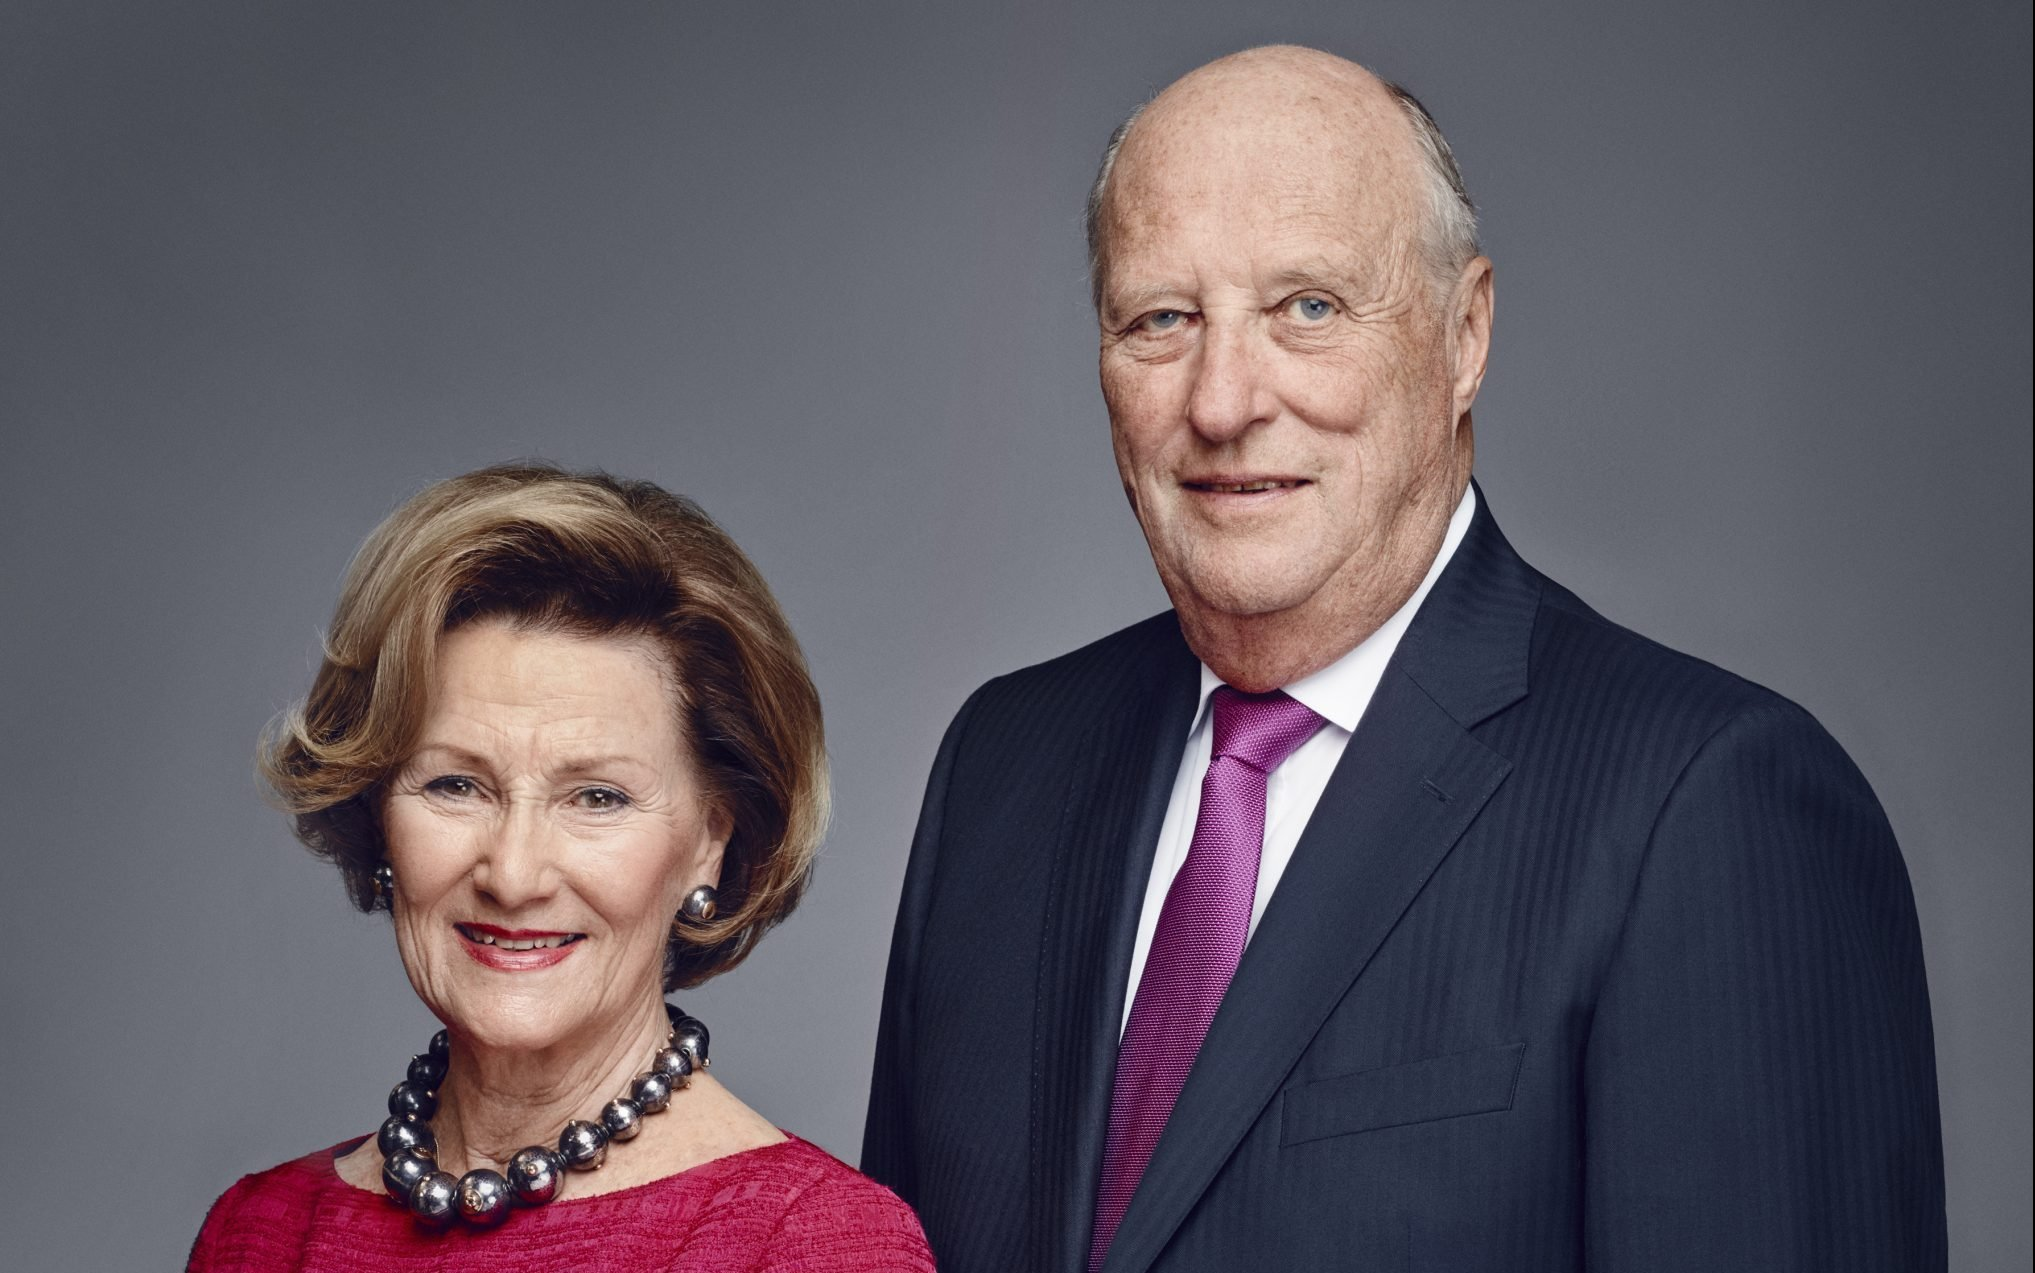 Norwegian royal family | 50 years of marriage in 2018 | Norway